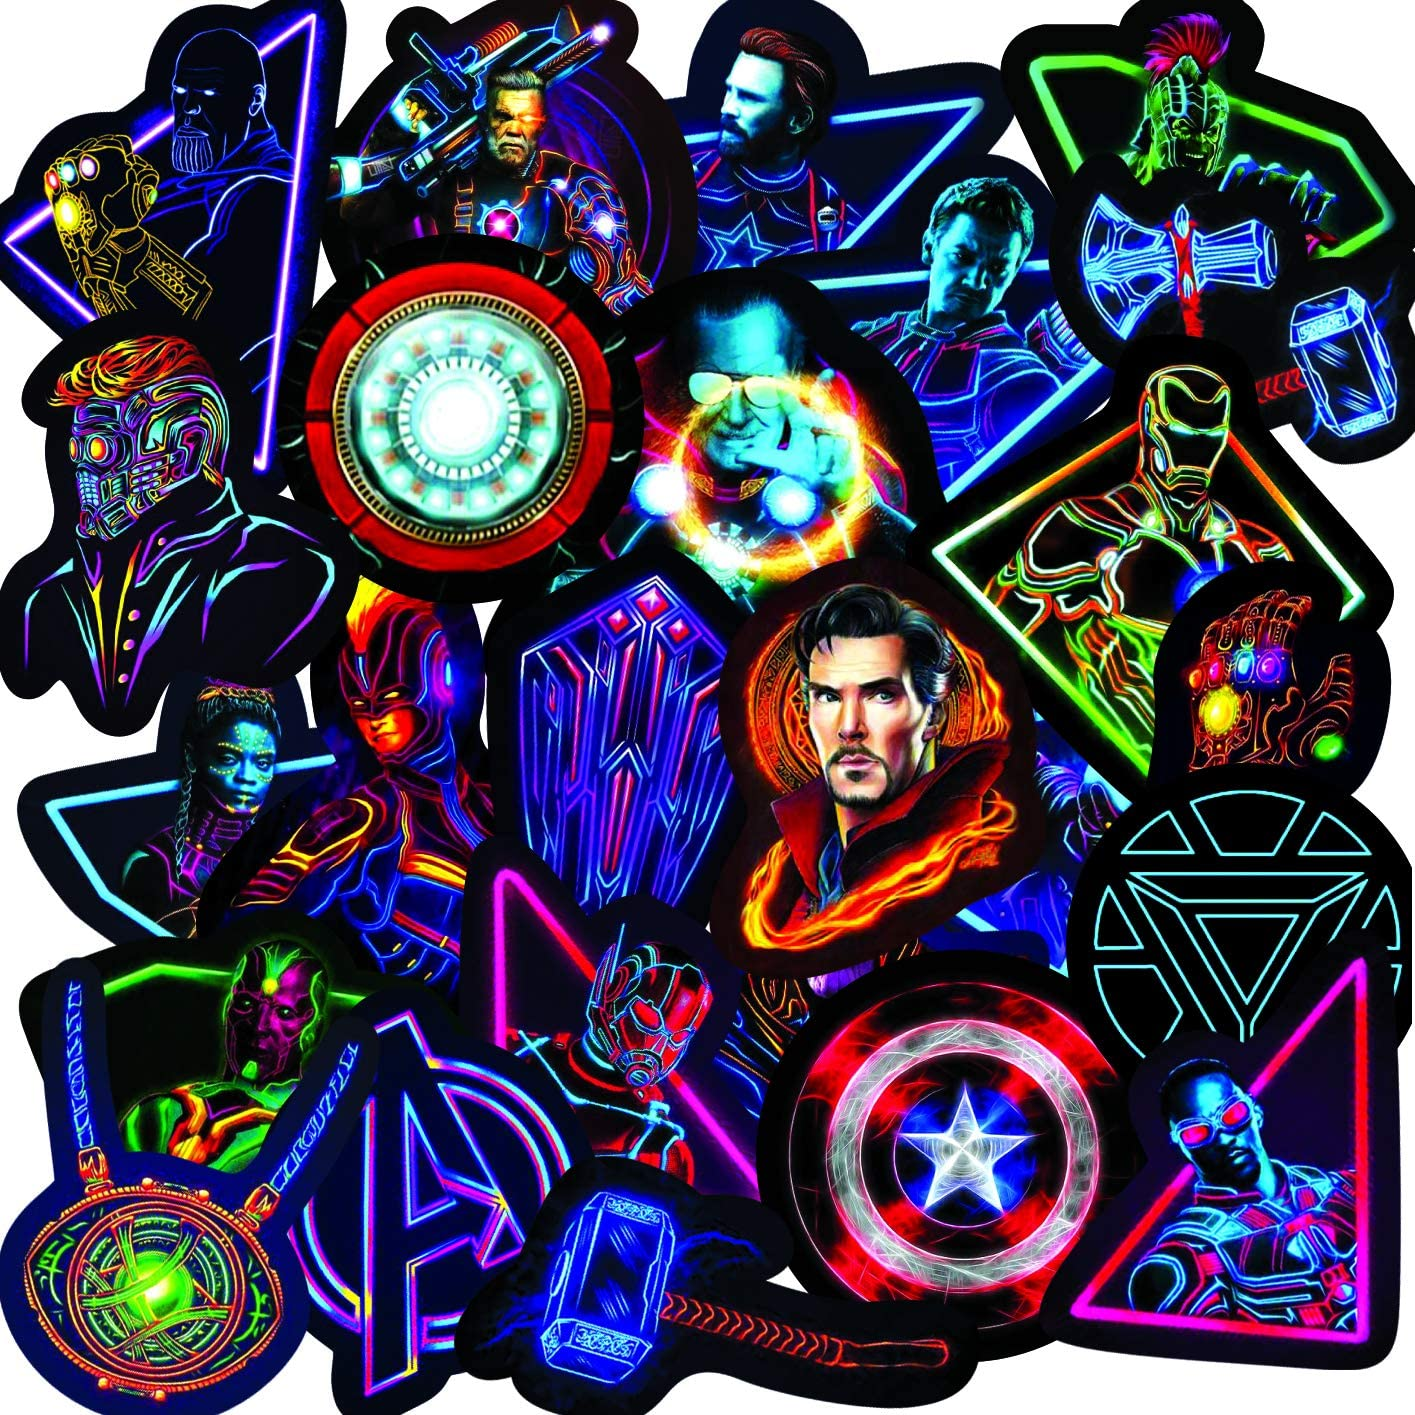 Neon Super Hero Stickers -30pcs Big,Marvel Sticker for Water Bottle Skateboard Motorcycle Luggage Waterproof Vinyl Decals for Stickers Decal(Superhero)